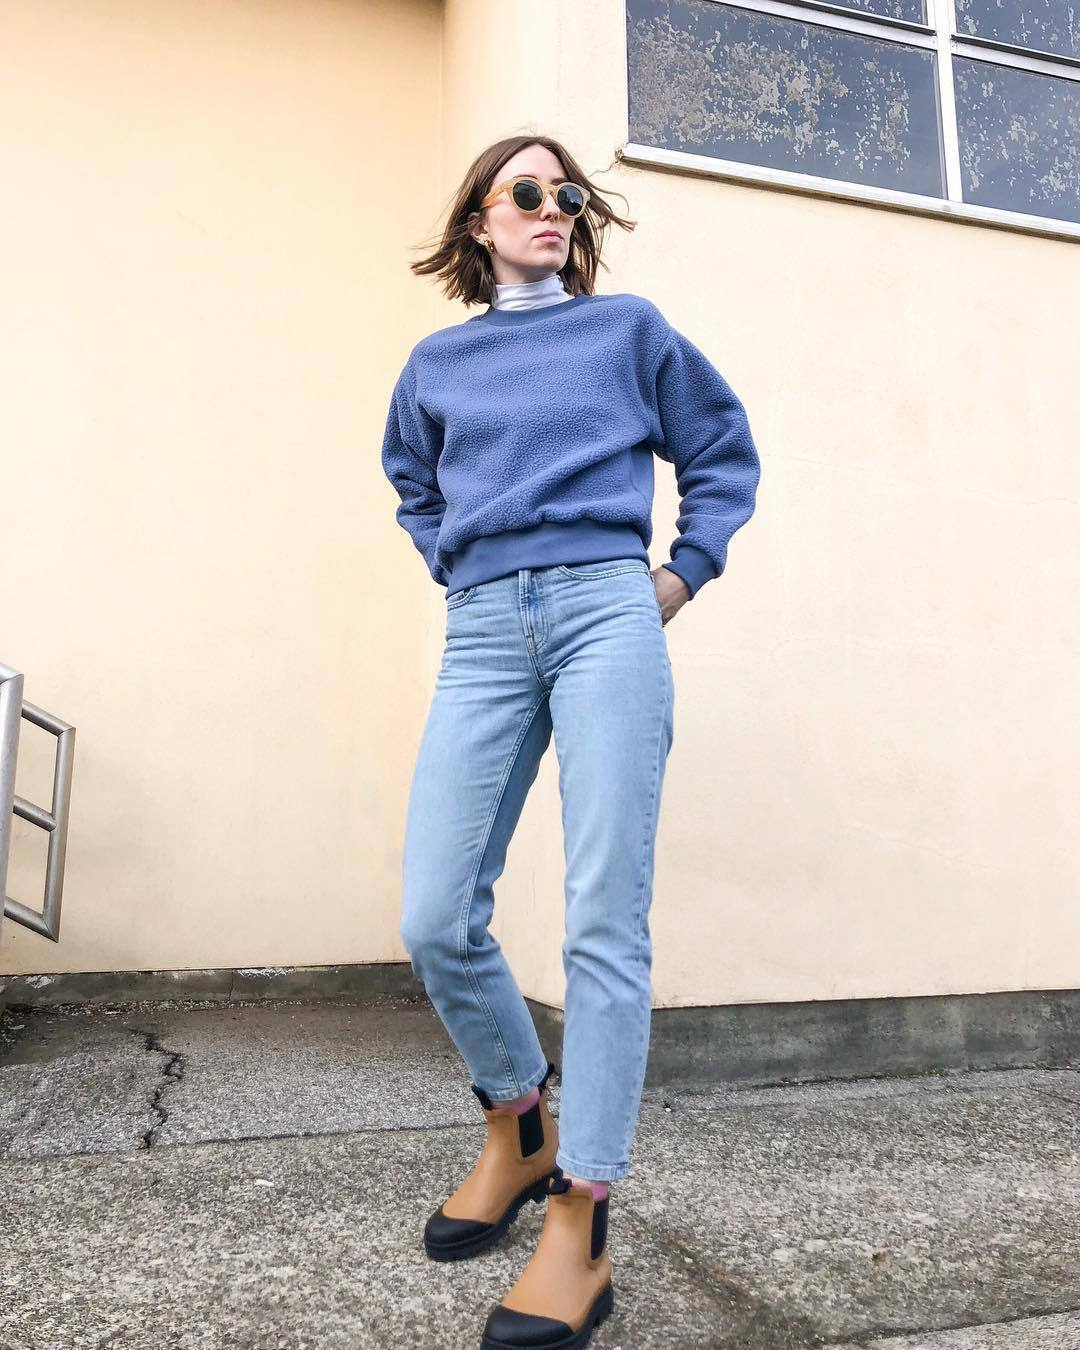 shoes brown boots ankle boots straight jeans high waisted jeans blue sweater white turtleneck top sunglasses